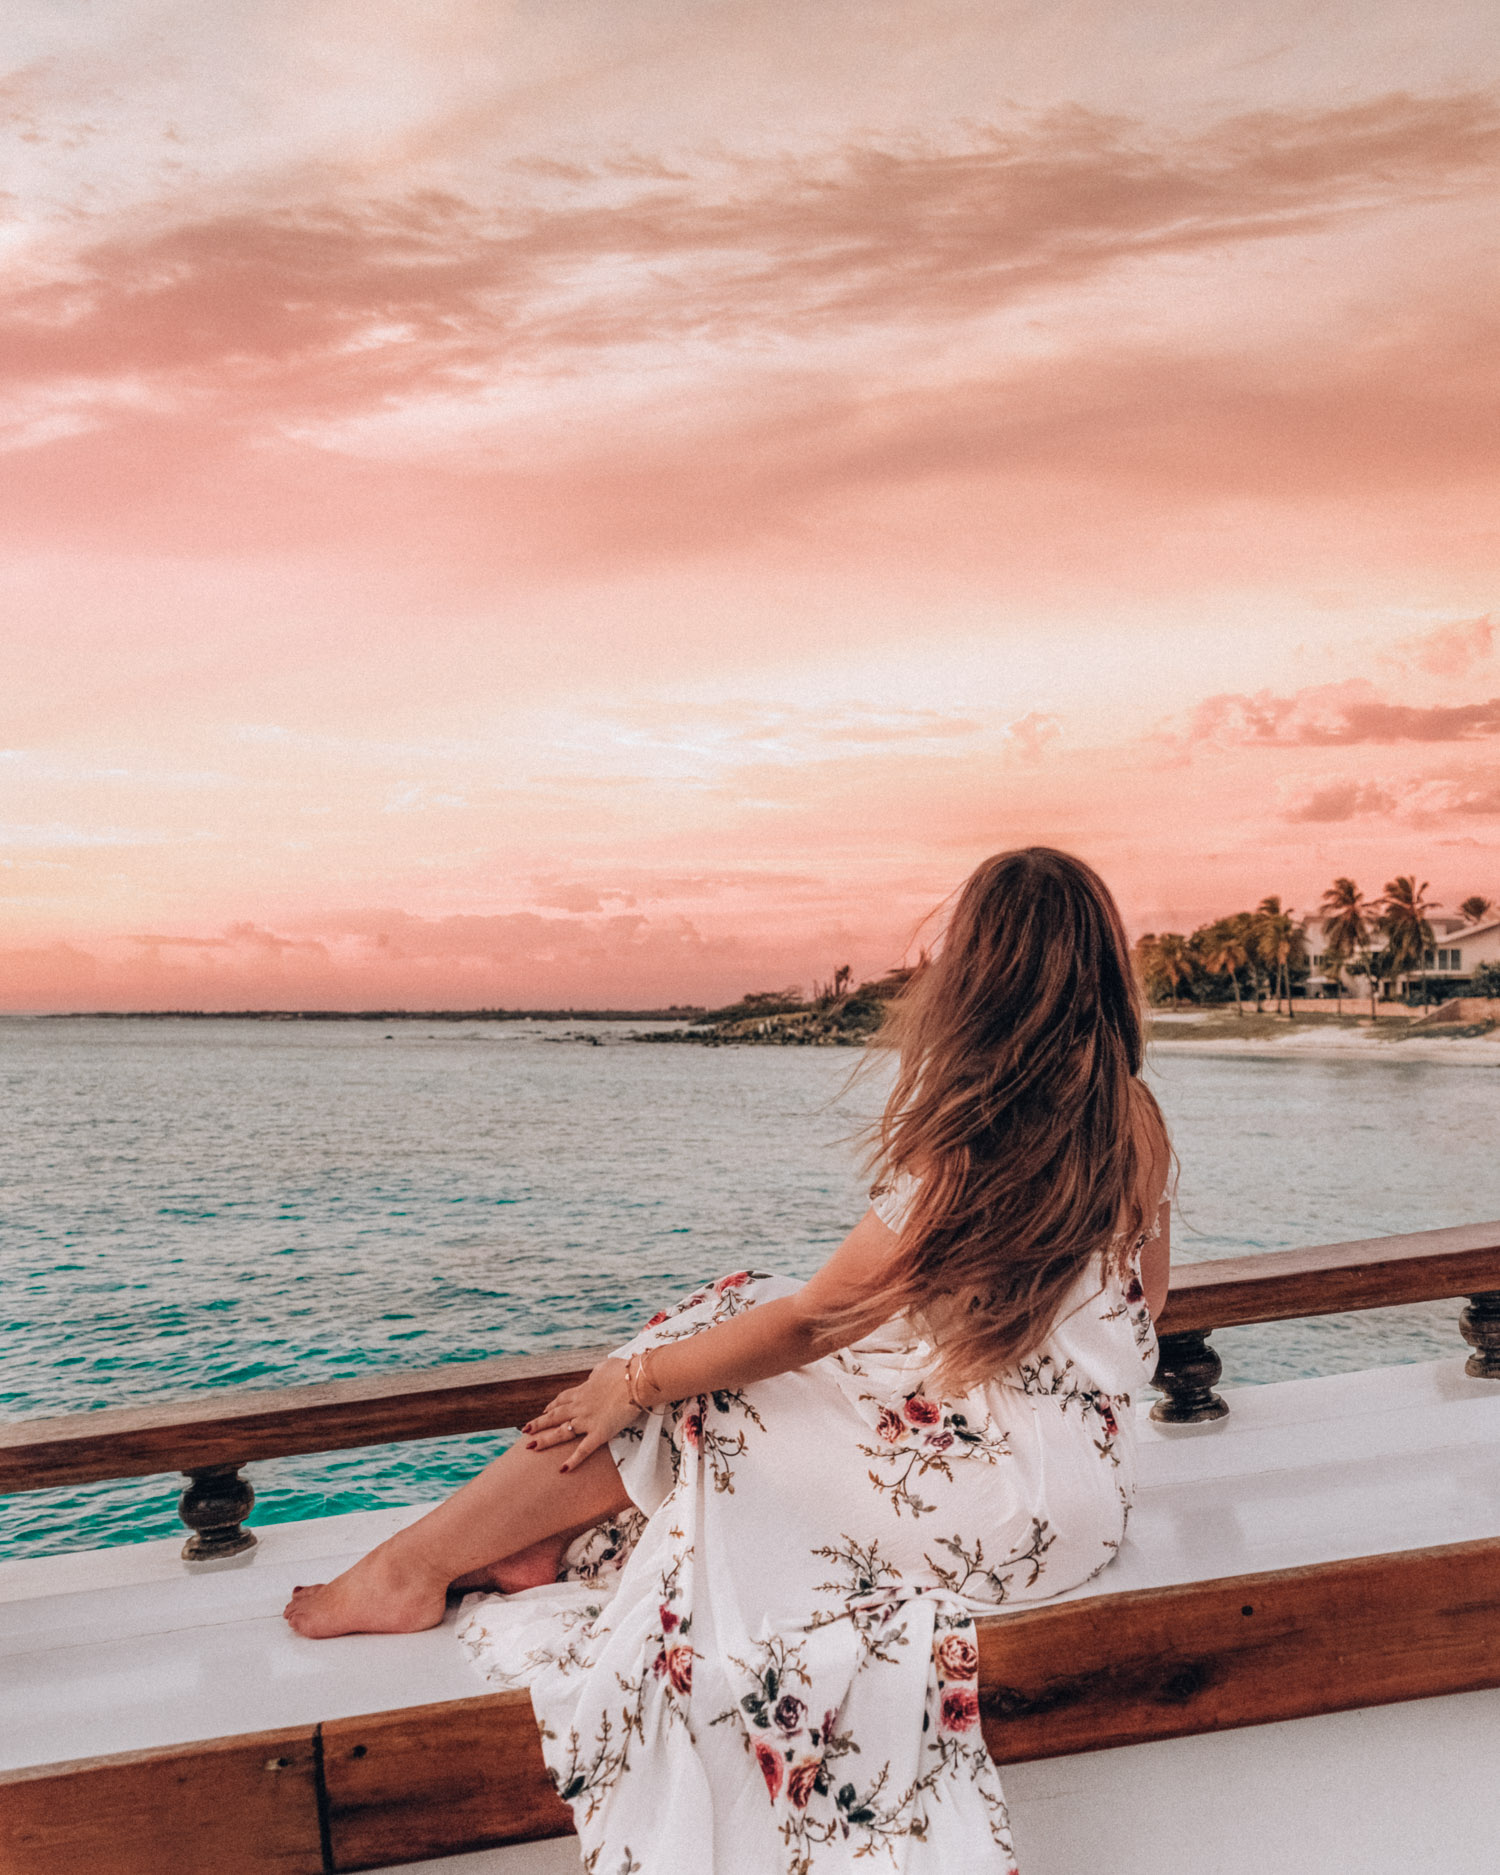 Sunset Boat Tour | Things to do in Aruba